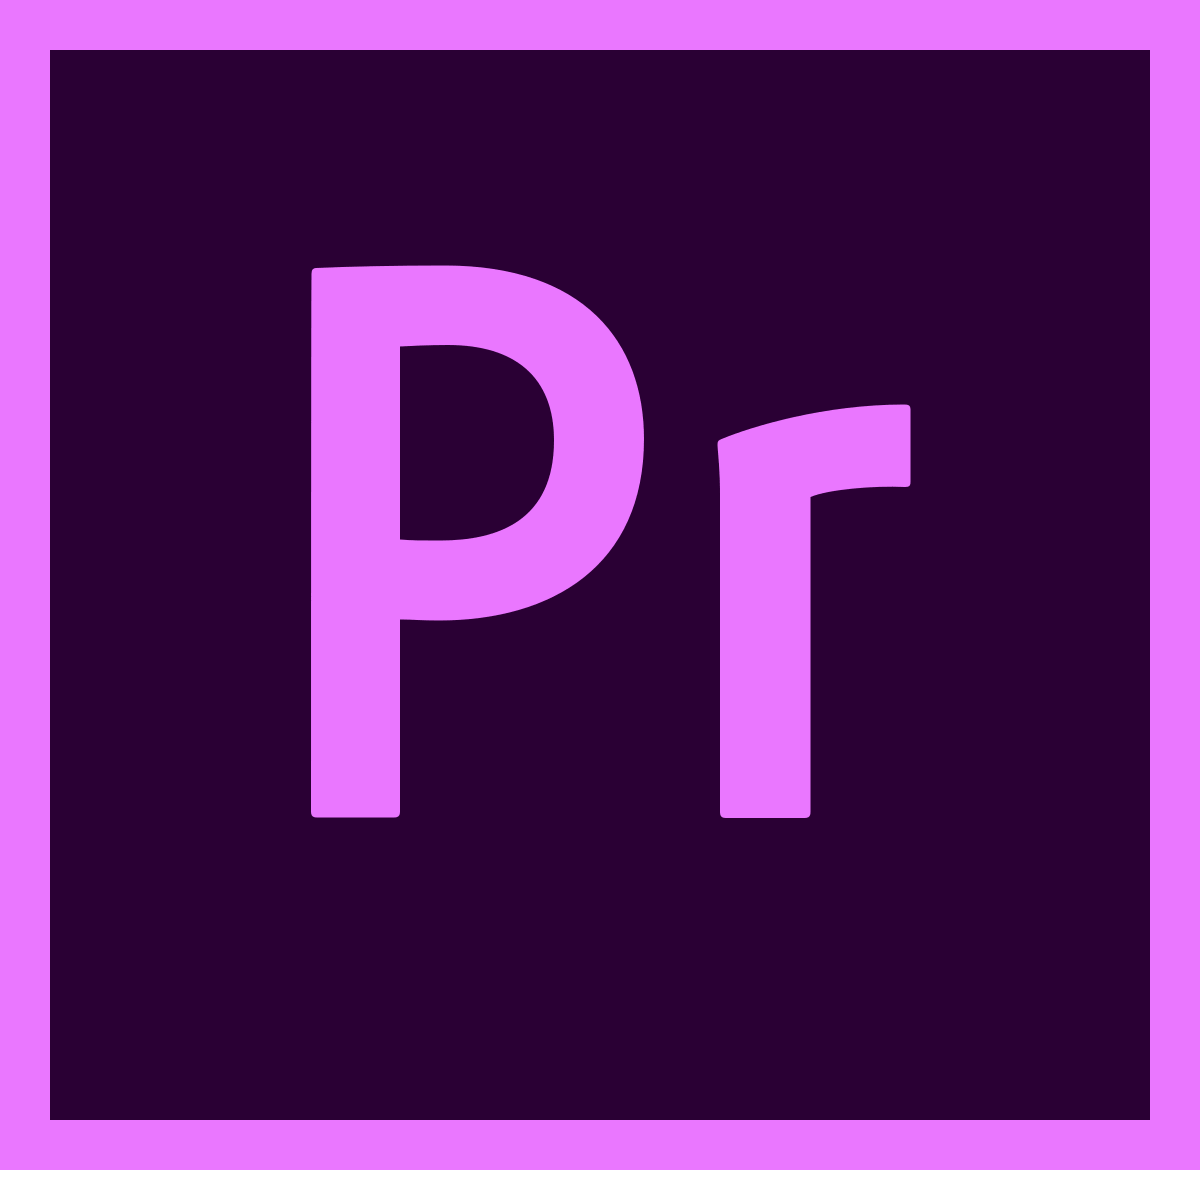 logo of adobe premiere pro, a simon says integration